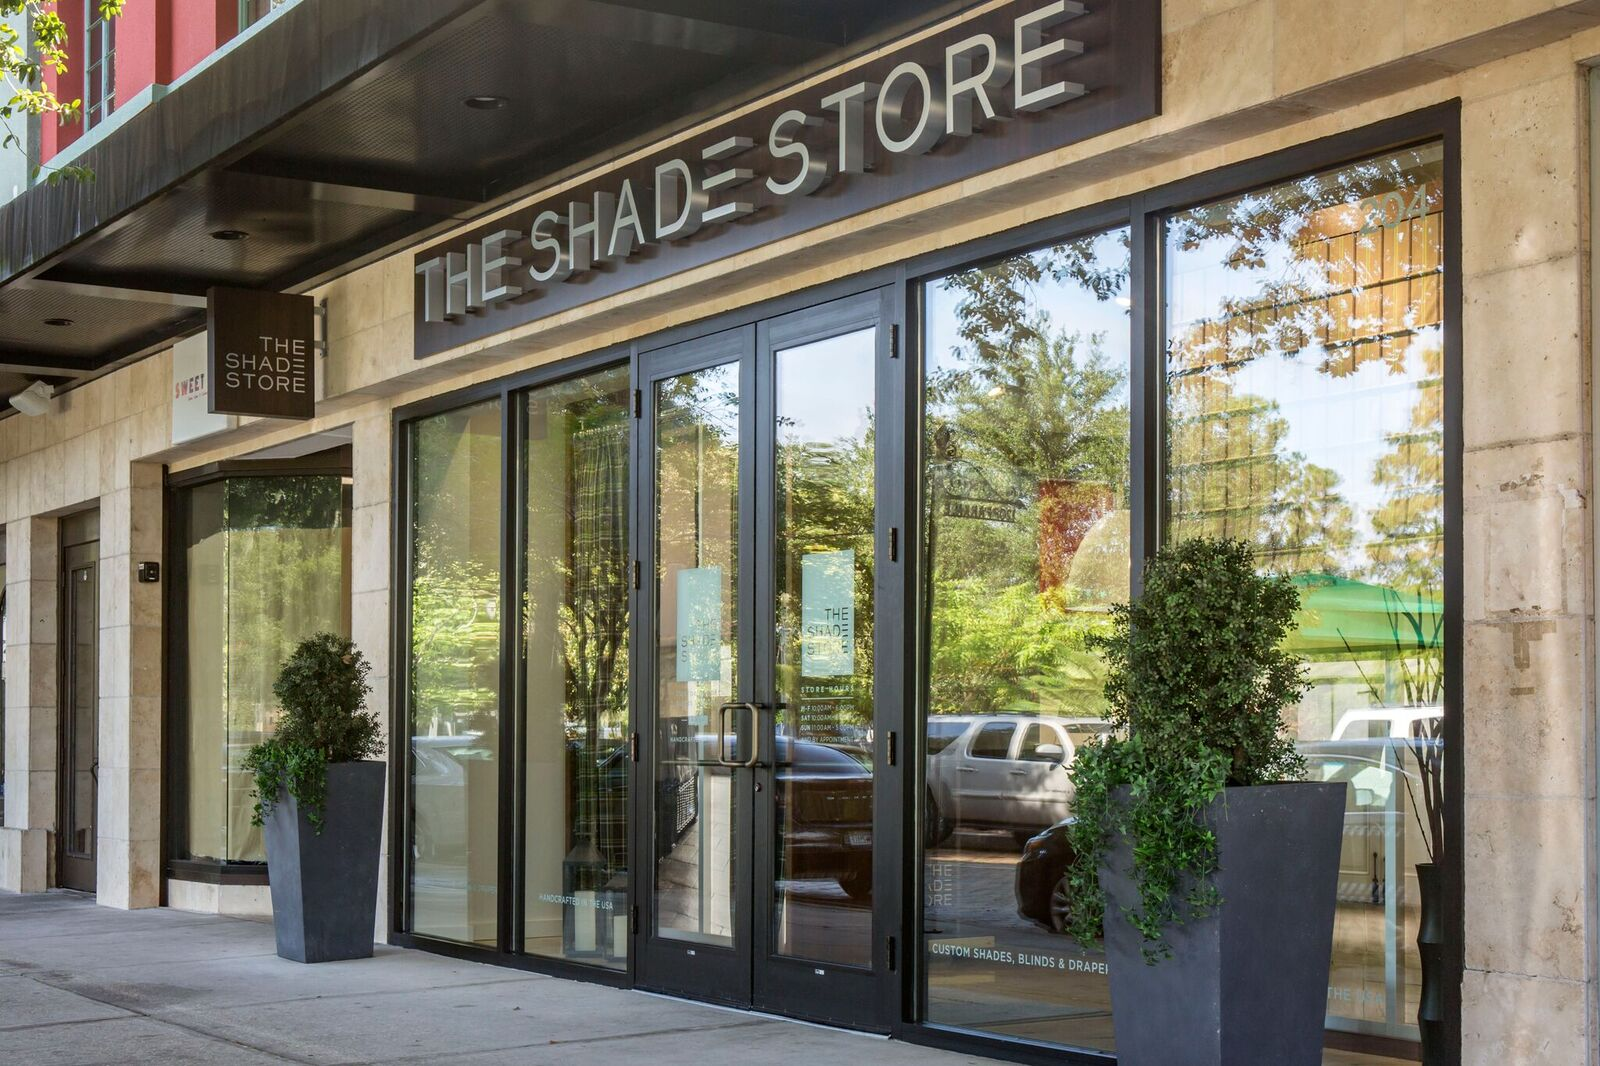 Find The Shade Store in Mill Valley with Address, Phone number from Yahoo US Local. Includes The Shade Store Reviews, maps & directions to The Shade Store /5(20).